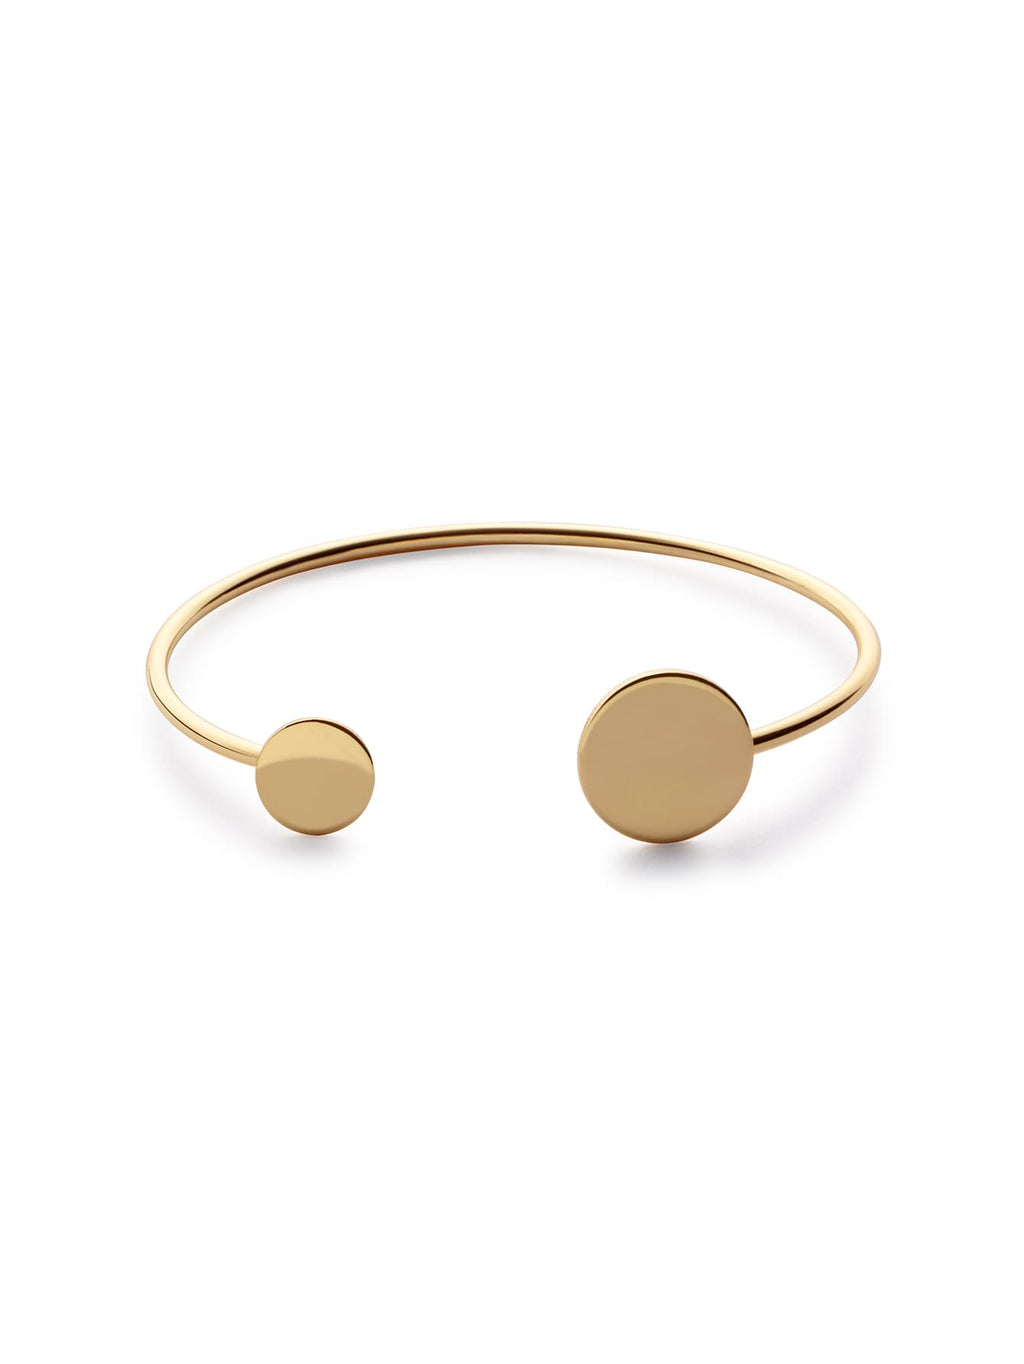 Bracelets For Women - Gold Plated Coin Wrap Bangle